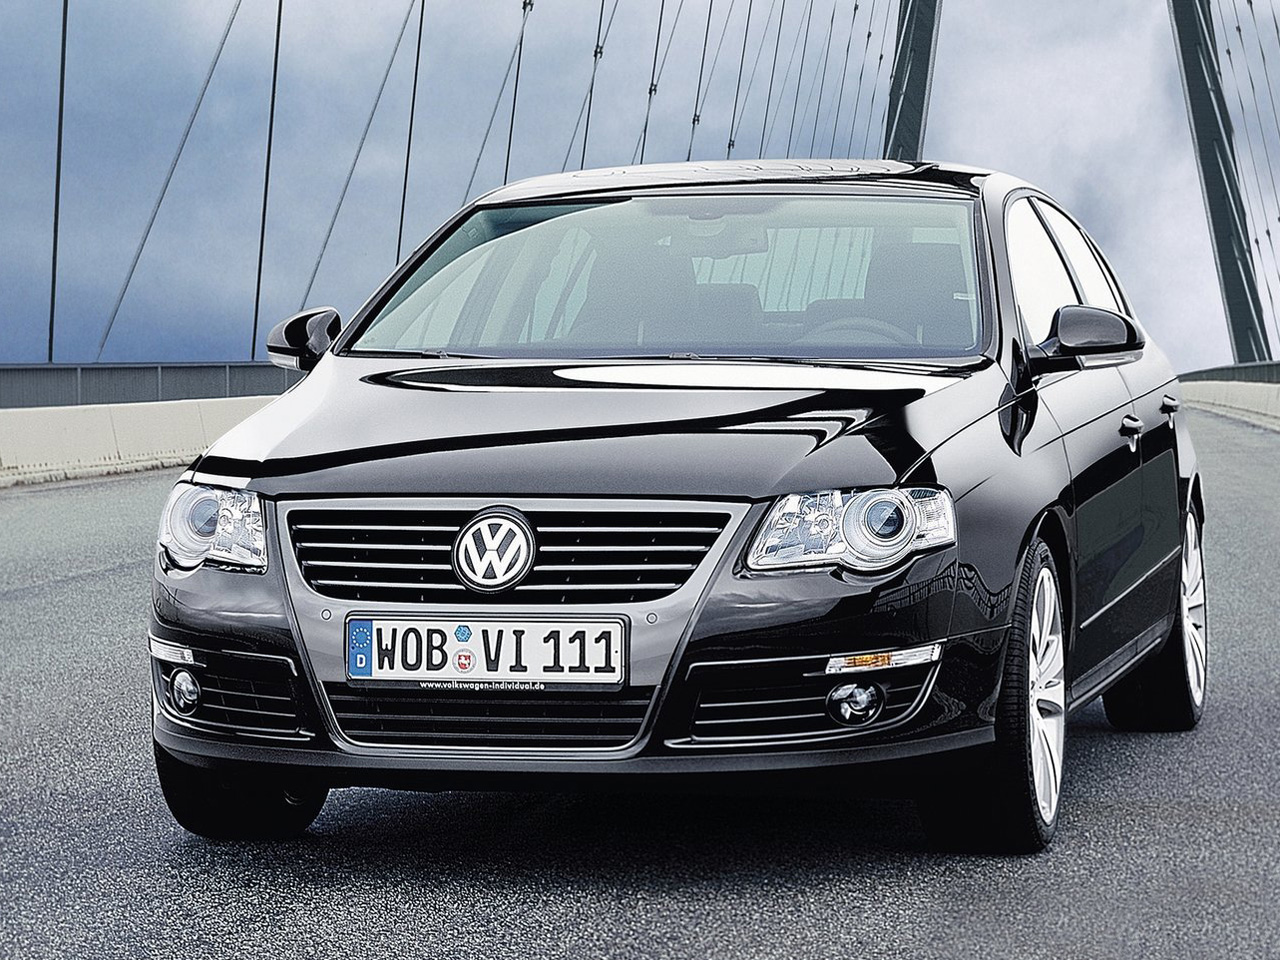 2006 volkswagen passat b6 pictures information and specs auto. Black Bedroom Furniture Sets. Home Design Ideas